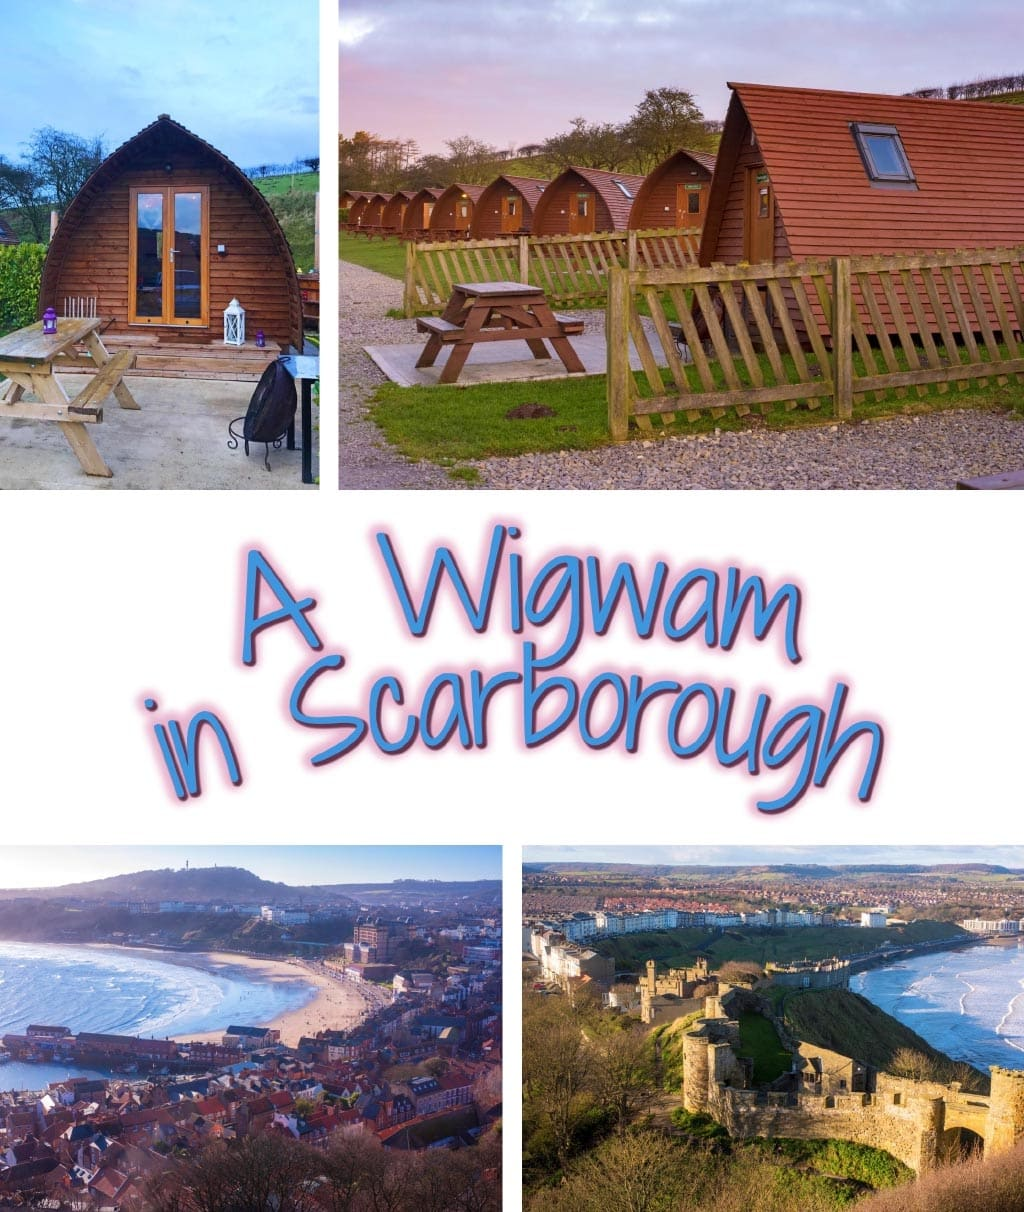 """Four photo collage of wigwams and Scarborough sites with a text overlay saying """"A Wigwam in Scarborough"""""""